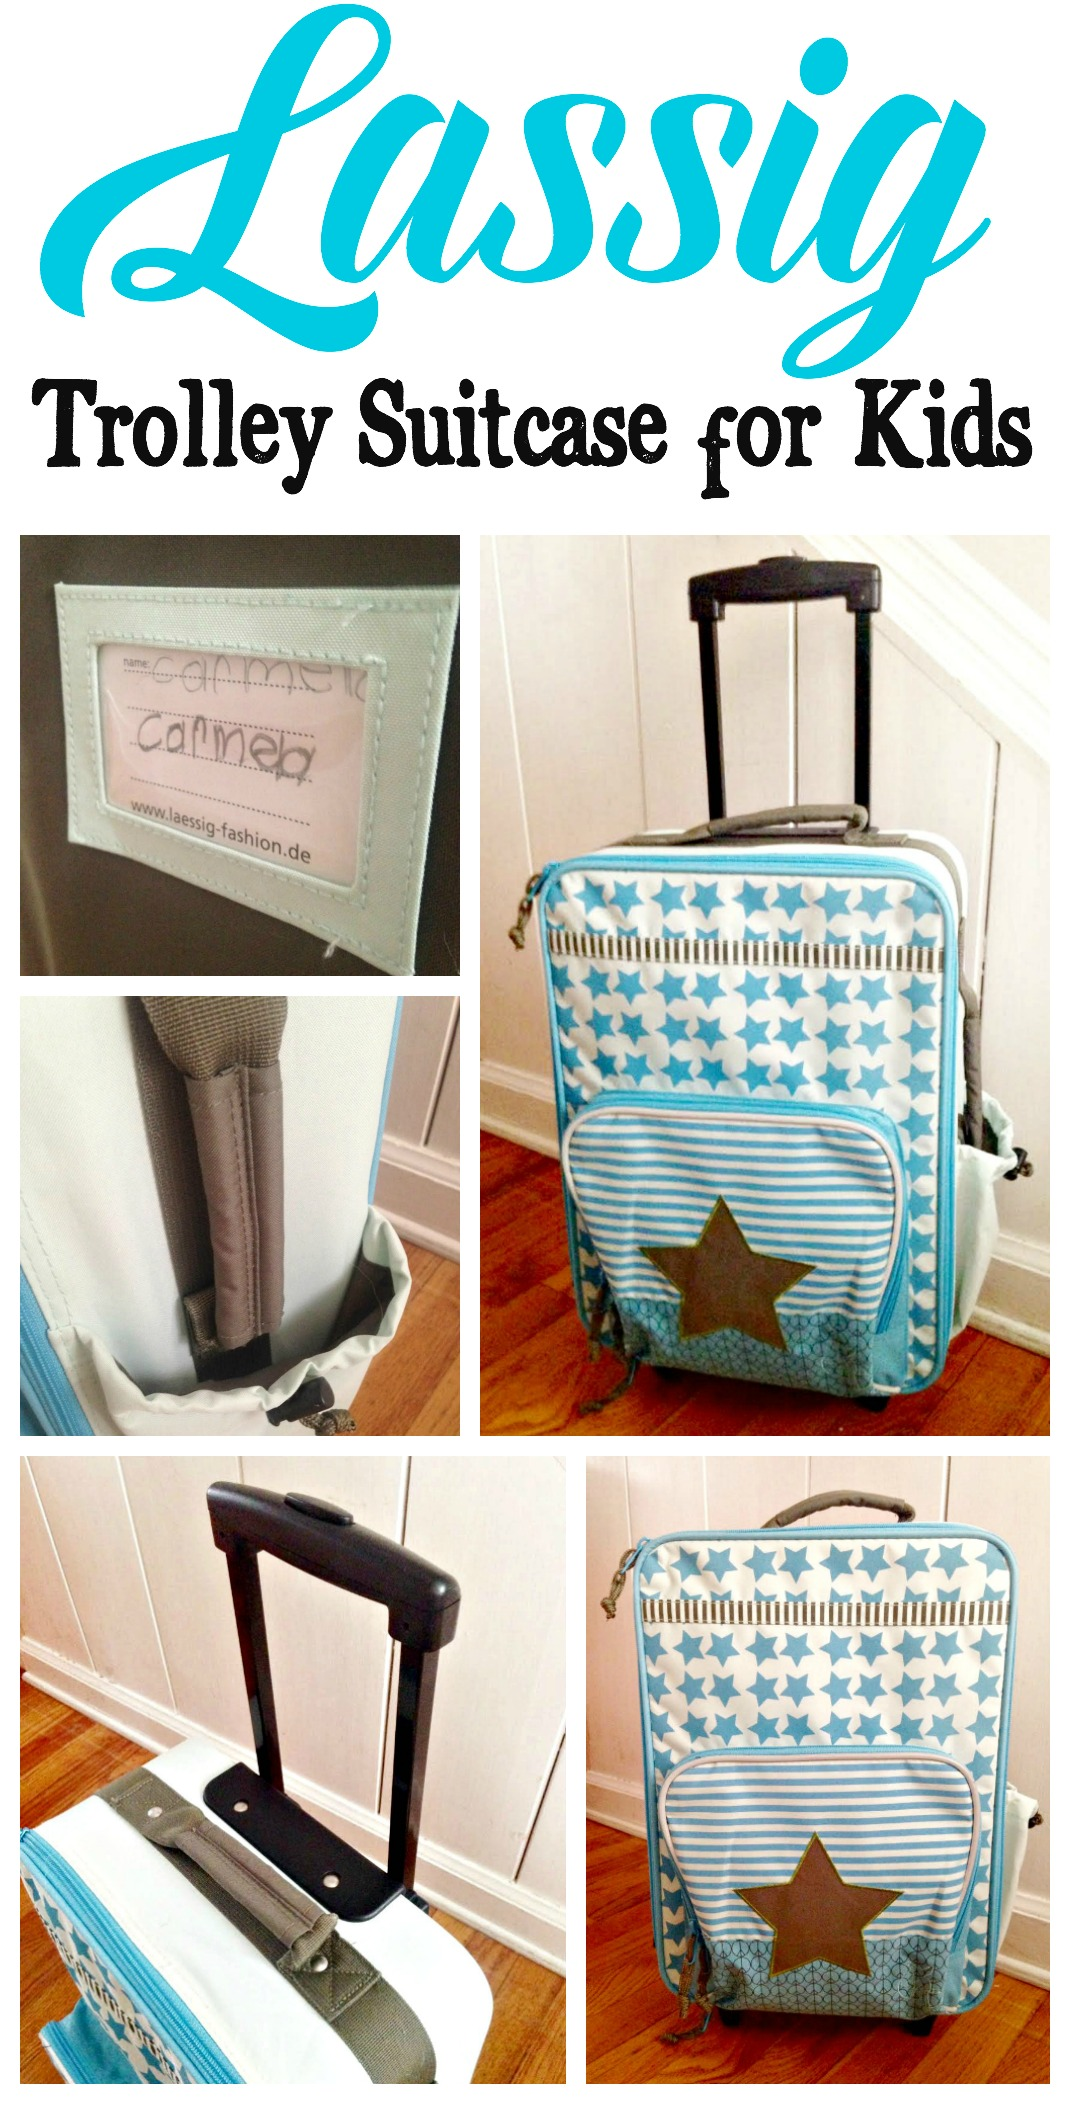 Lassig Trolley Suitcase for Kids